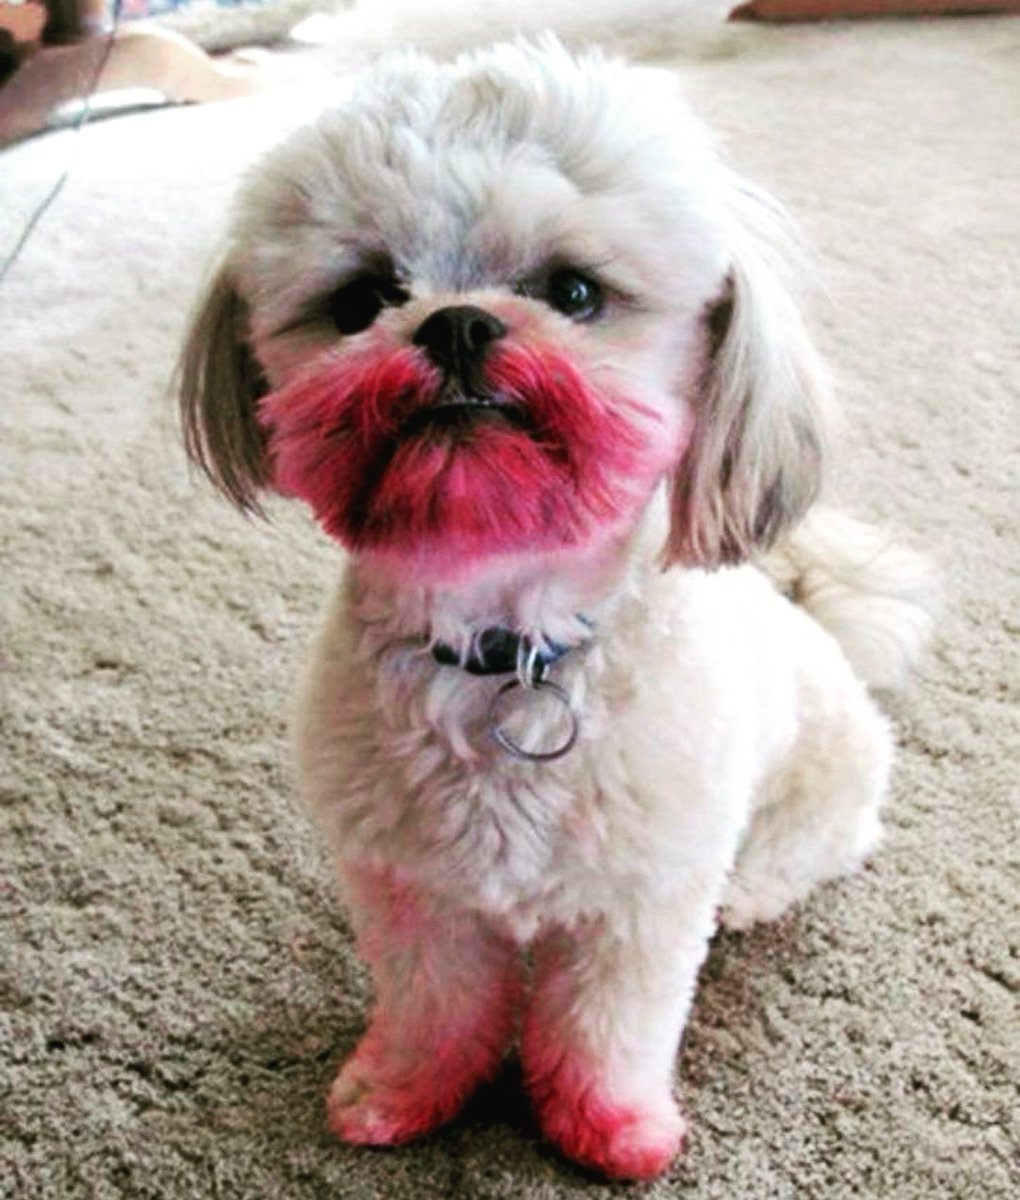 Don&#39;t angry on me, I just tried some makeup to look cute mom  #dogmom #dogsoftwitter #dog #doglovers #doggie #doggo #lovedogs #LoveYourPetDay #DogLife #dogsofinstagram #lifewithdog #dogfriendly #puppies #cutedogs #cutedog #dogoftheday #doggos #dogsocietyy #Followus<br>http://pic.twitter.com/yXUZe6UTP7